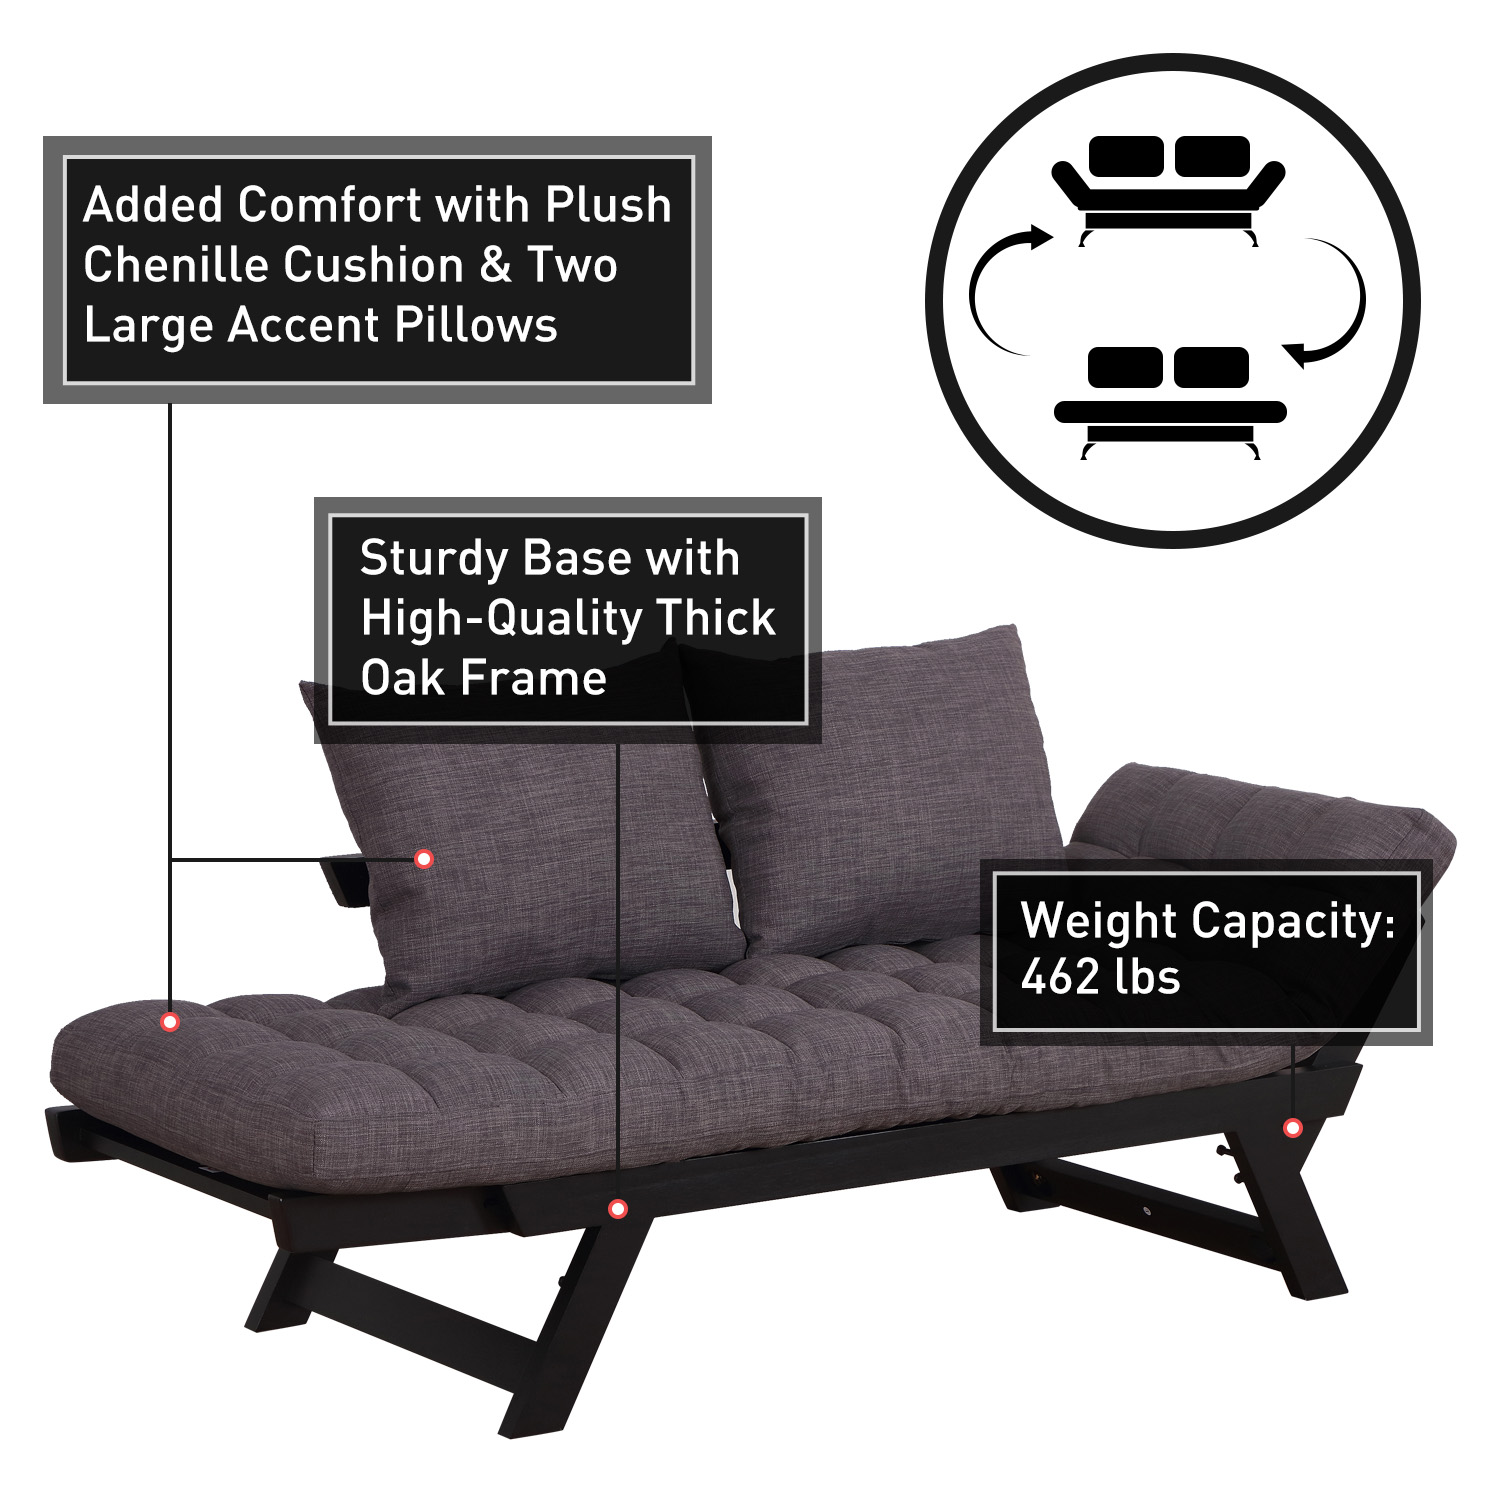 Brilliant Details About Convertible Sofa Bed Sleeper Couch Chaise Lounge Chair Adjustable Padded Pillow Beatyapartments Chair Design Images Beatyapartmentscom